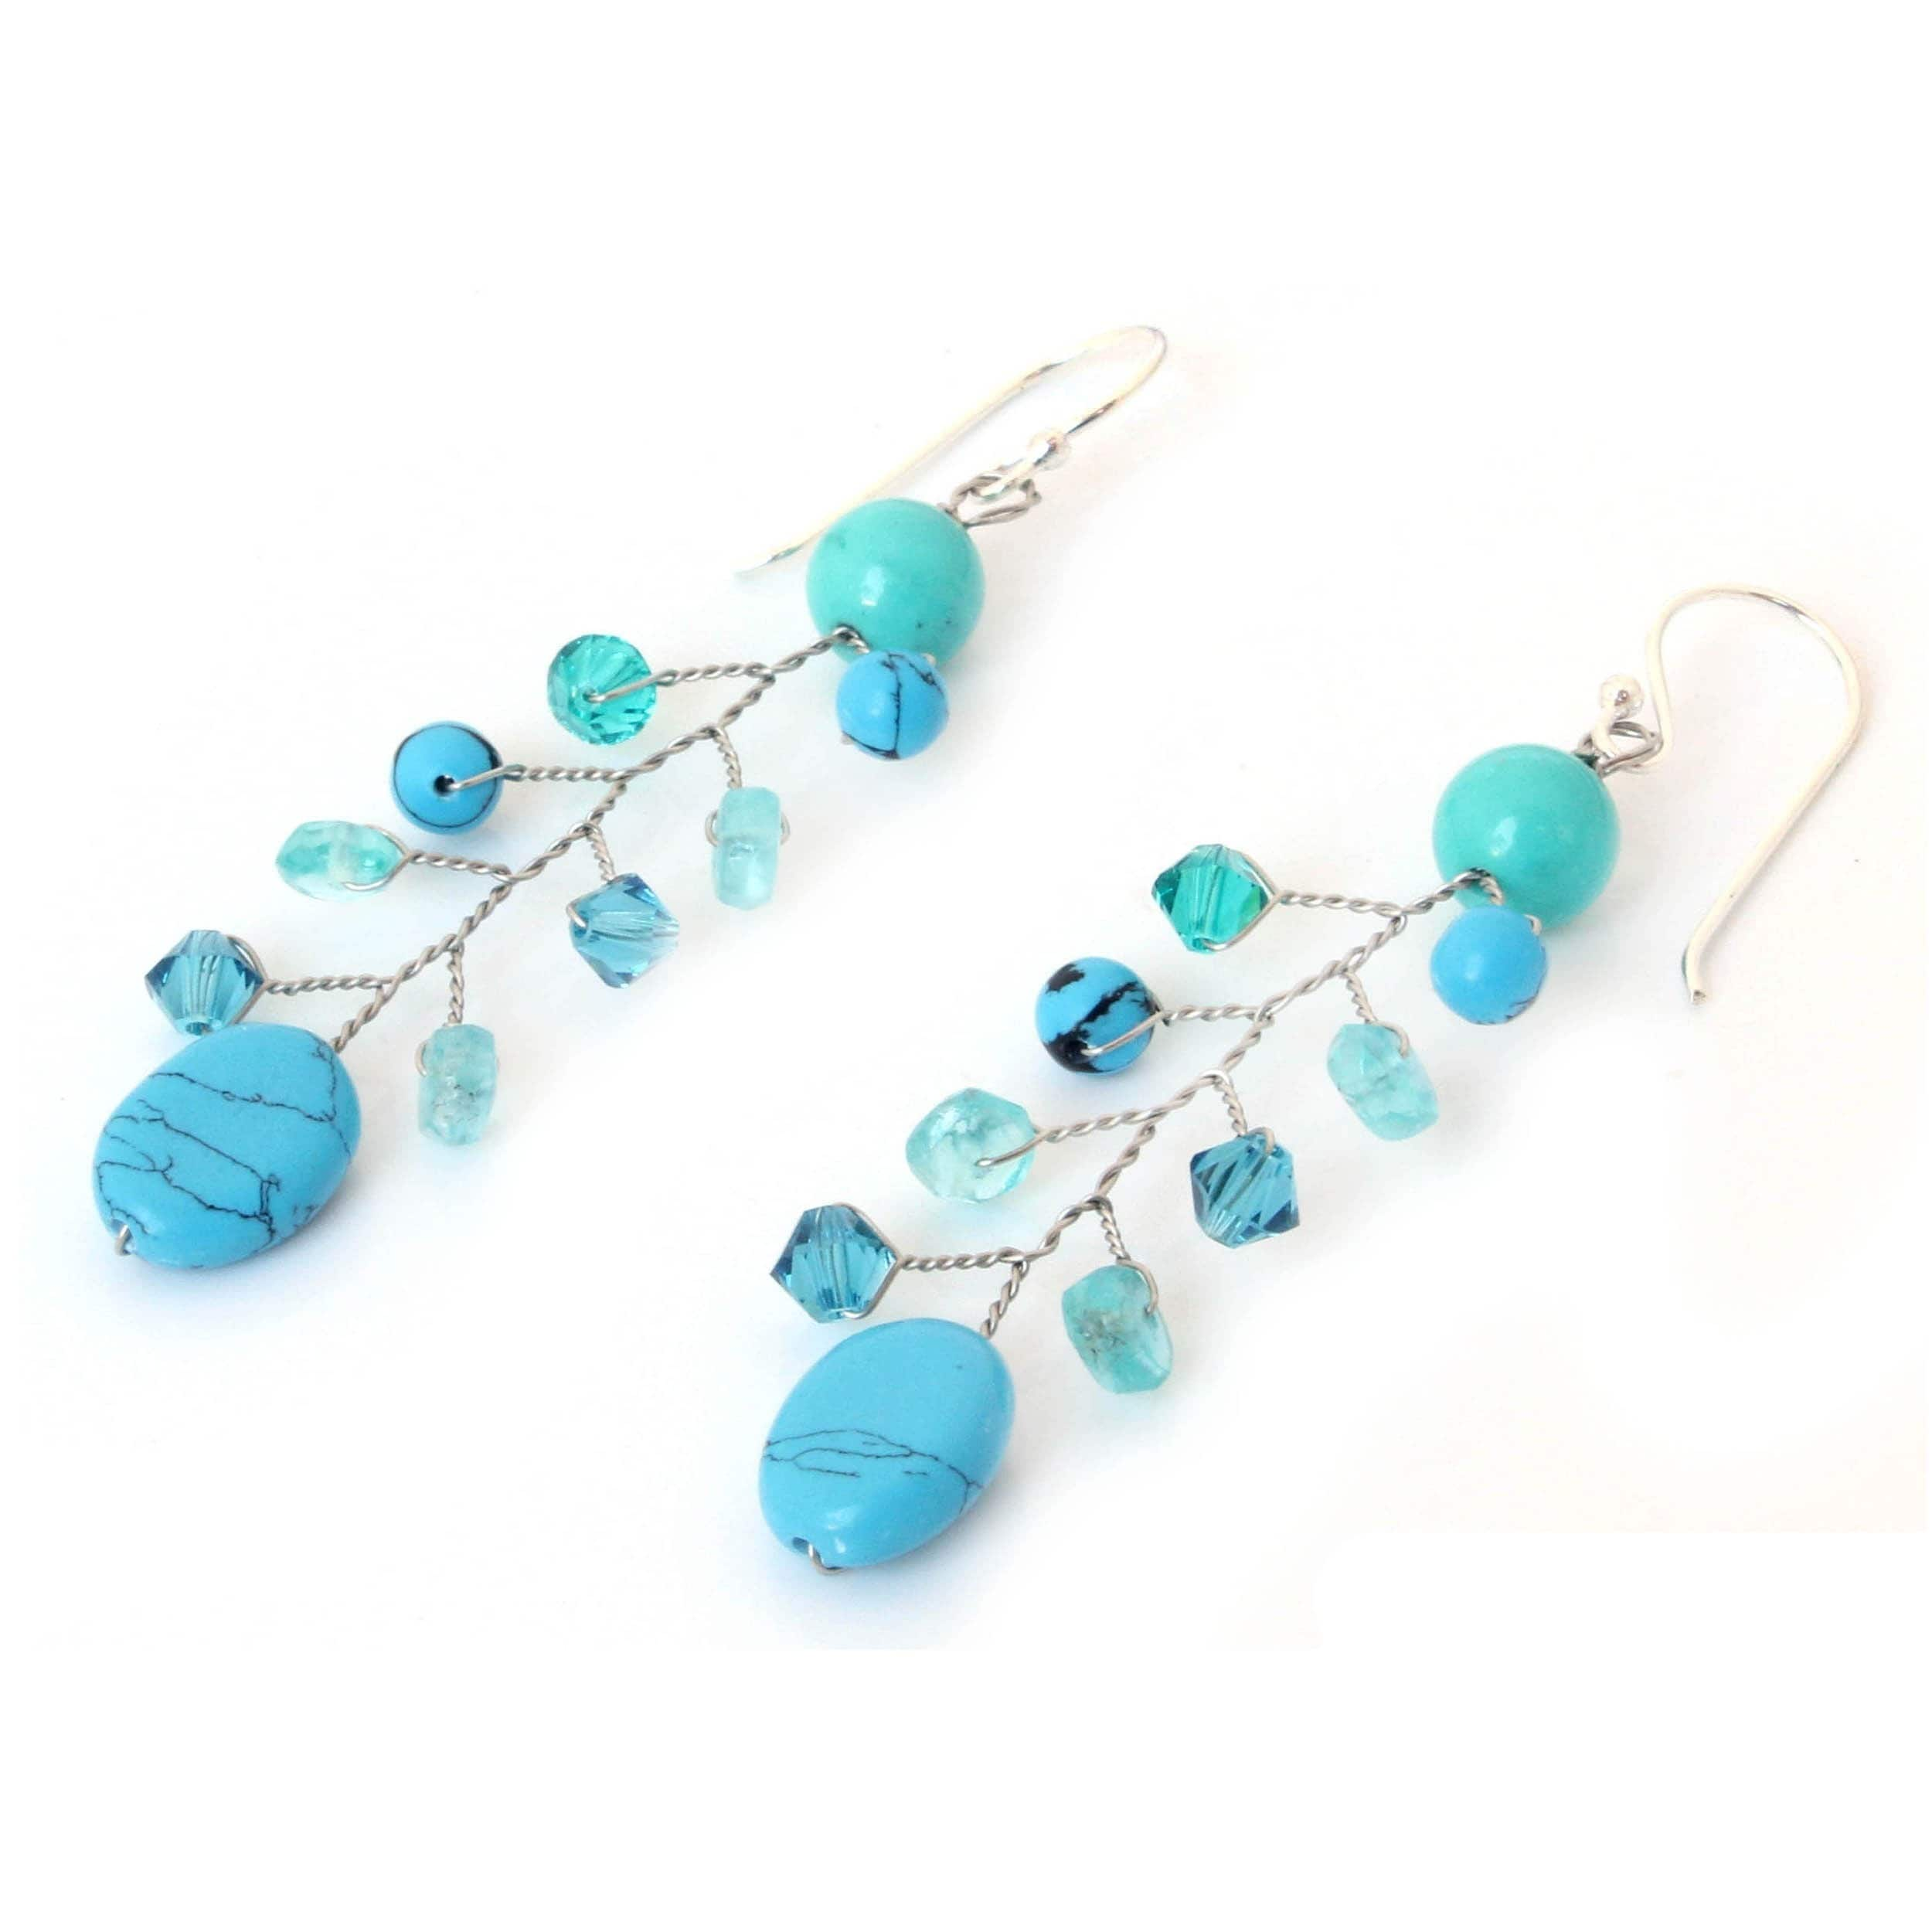 earrings silver sterling jewelry apatite aqua gemstone products and tassel balsamroot aptite